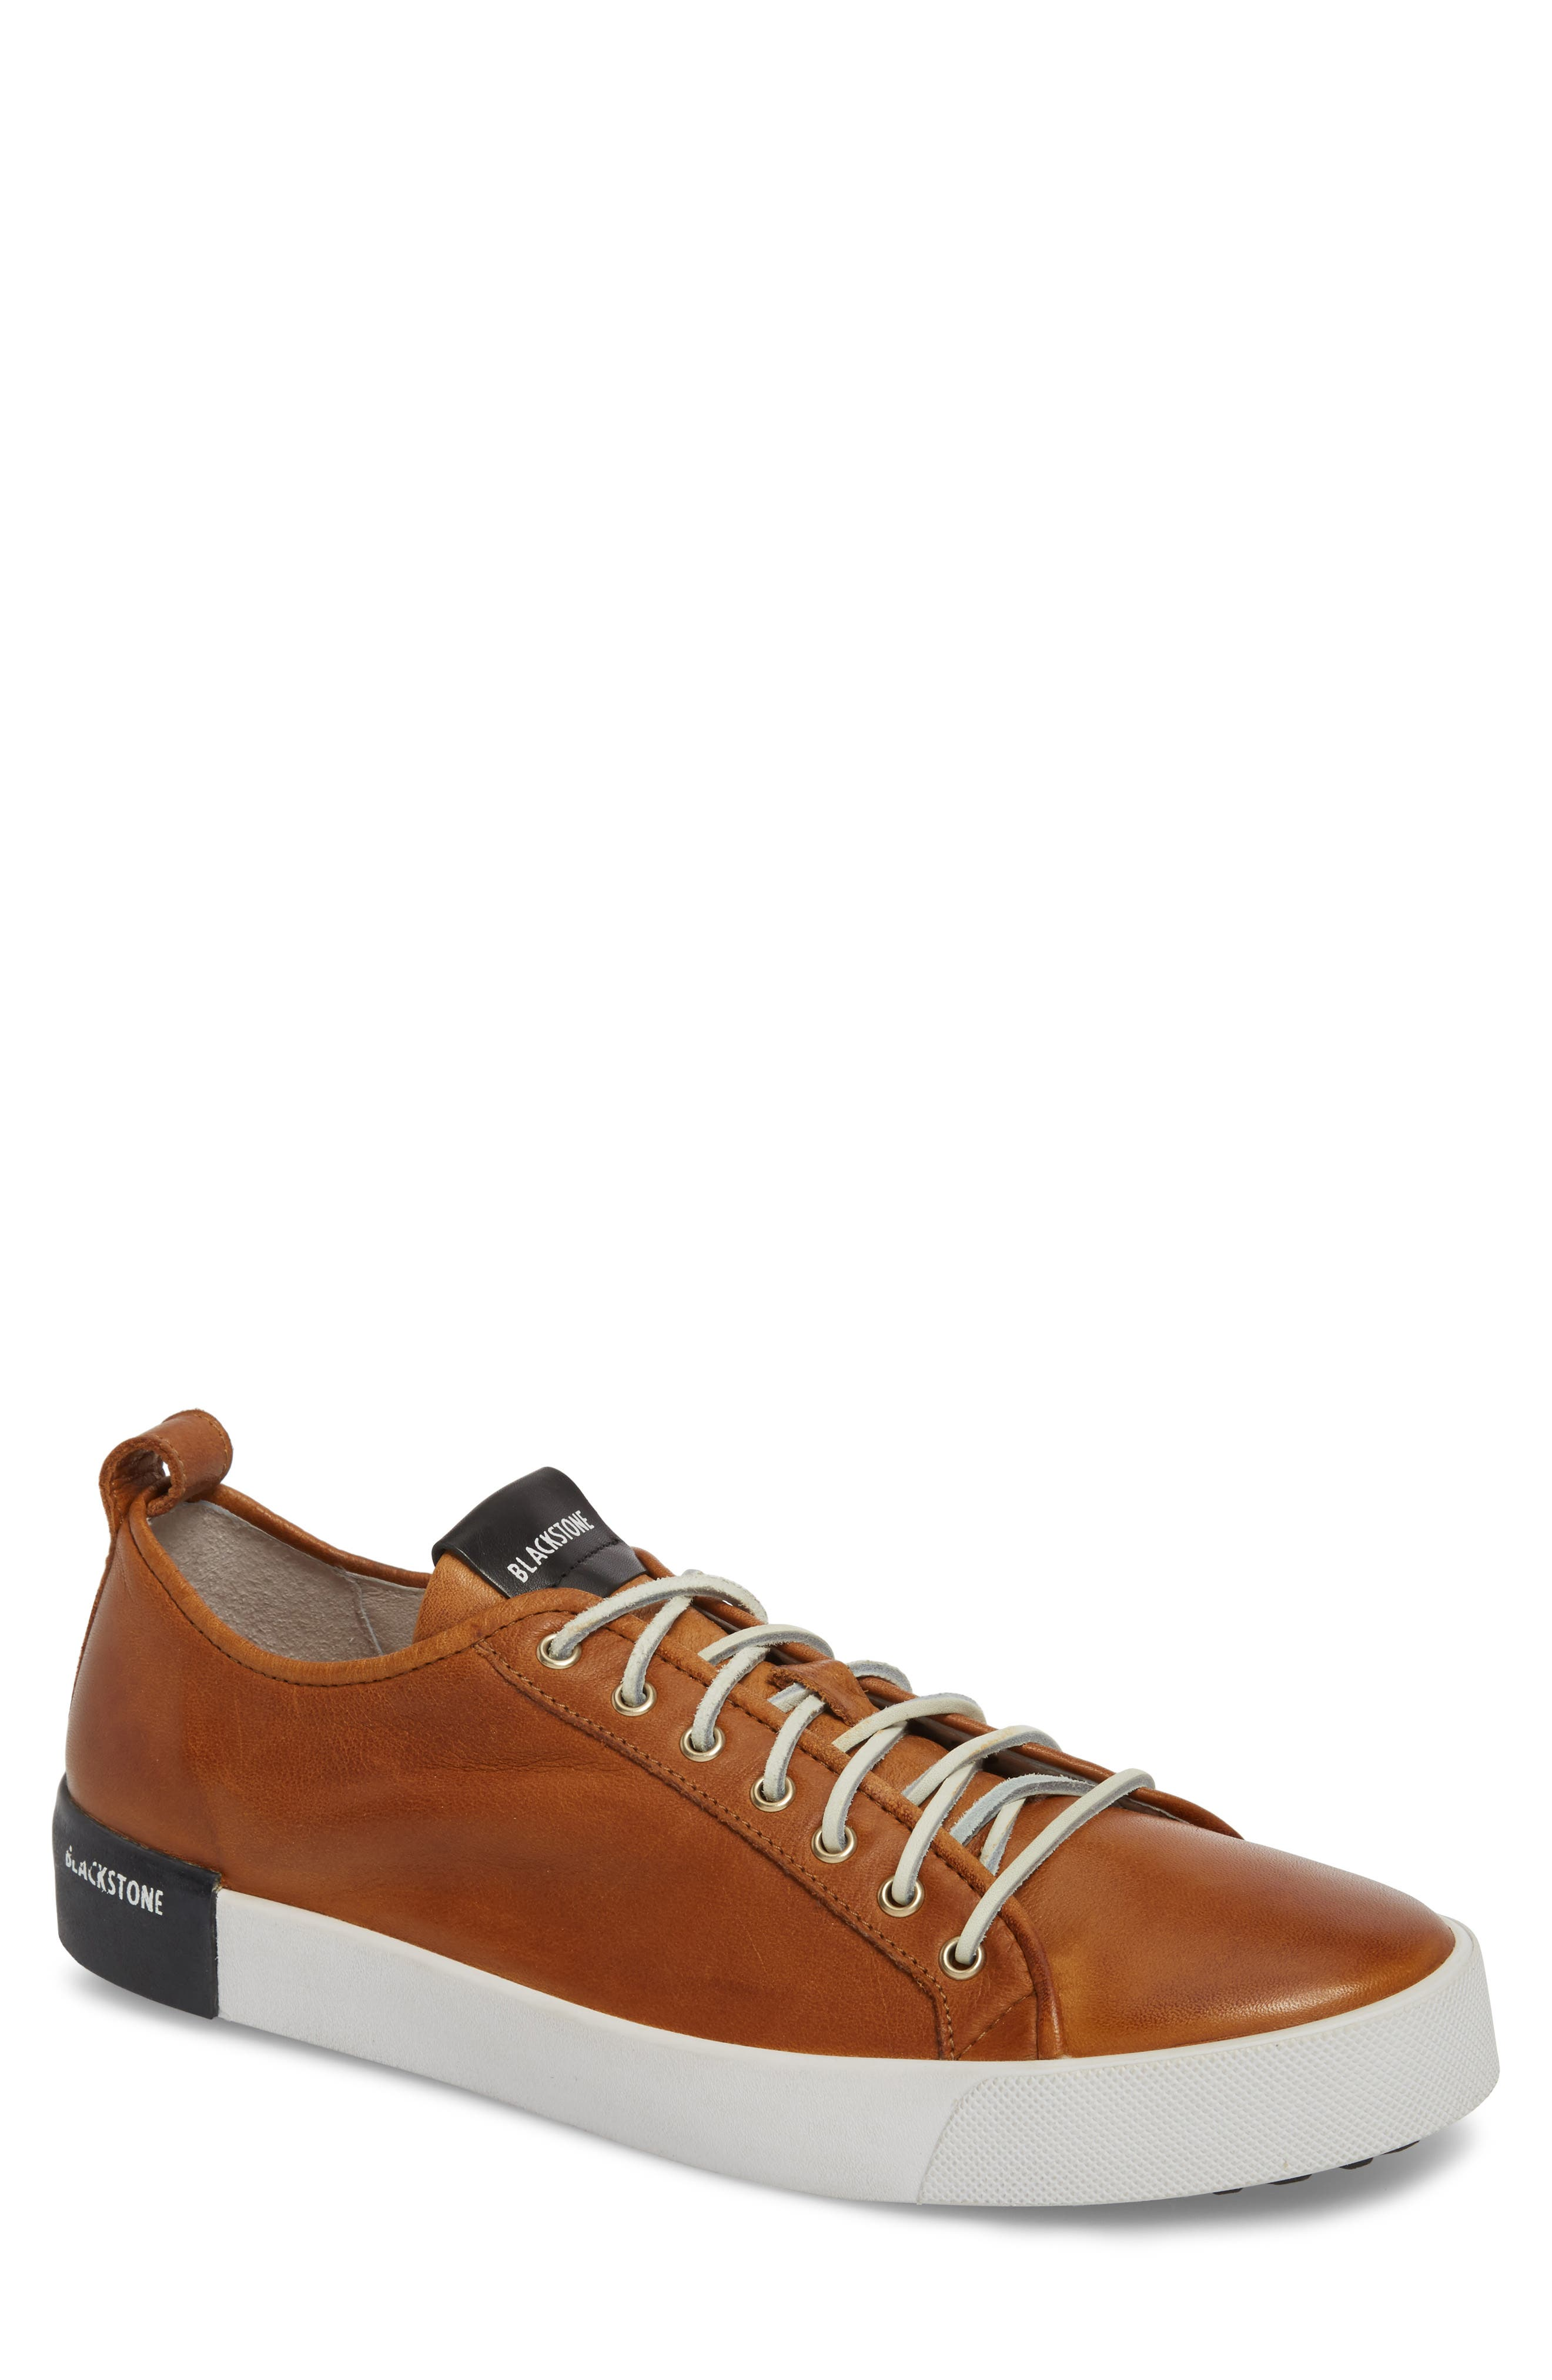 Blackstone PM66 Low Top Sneaker (Men)